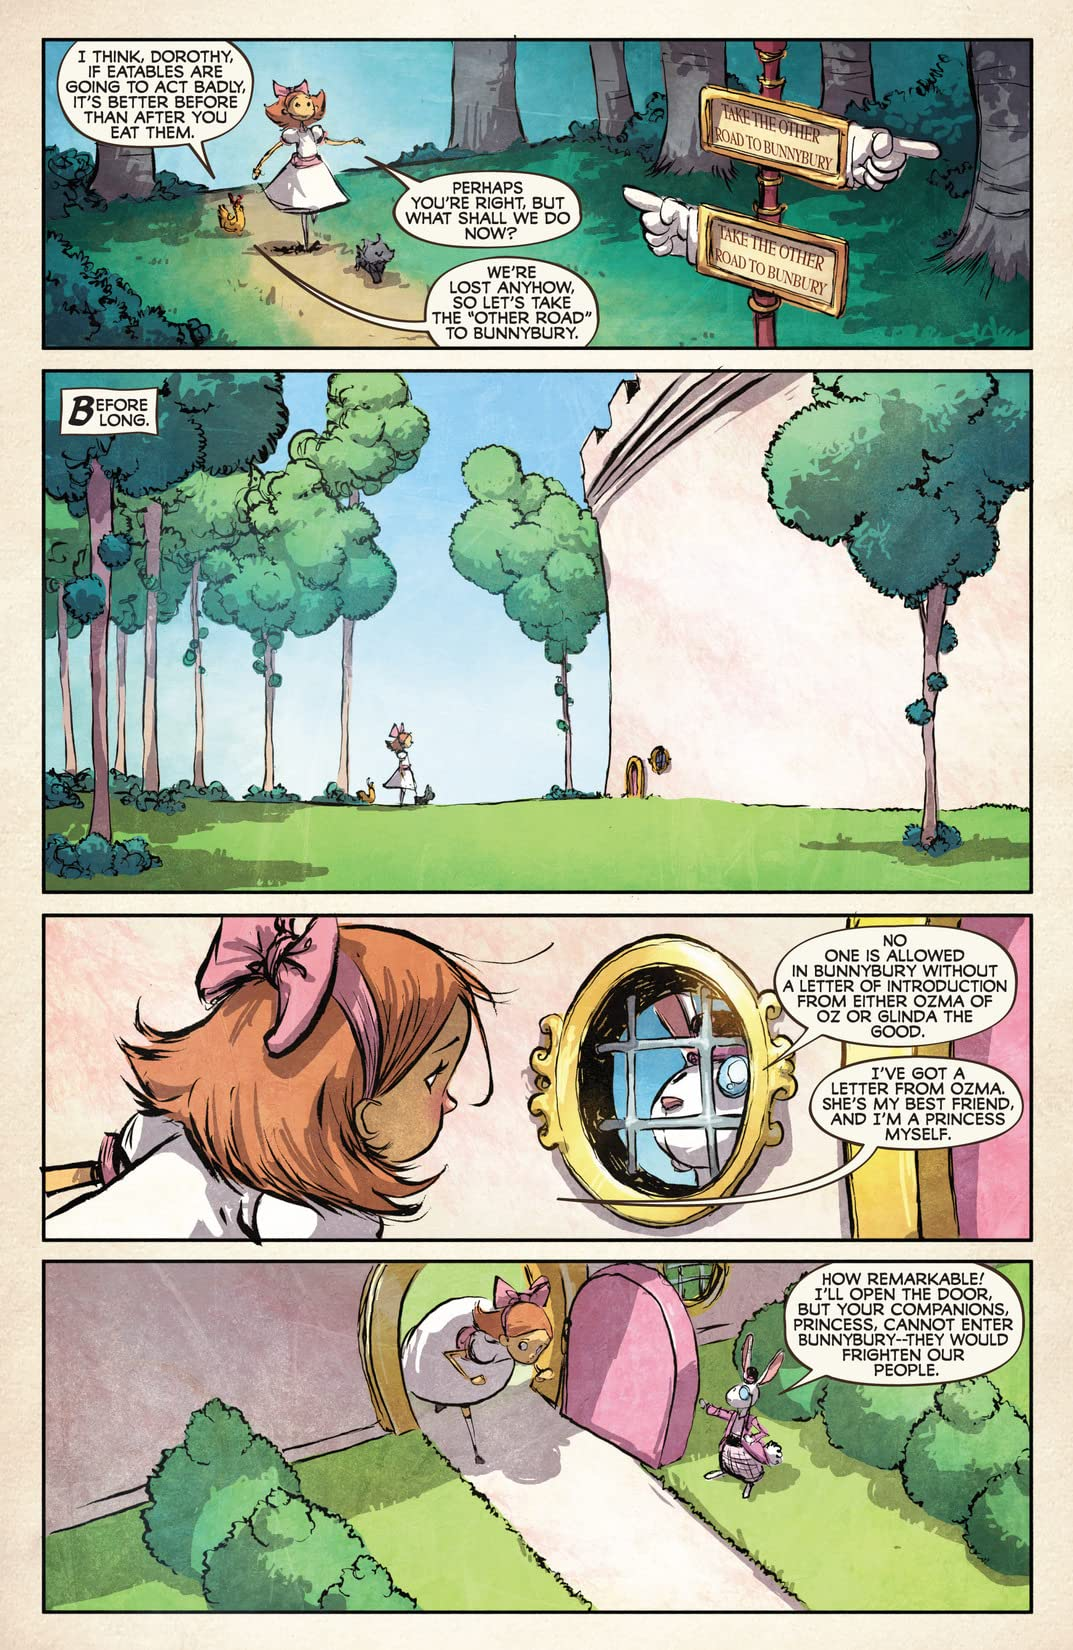 The Emerald City of Oz #4 (of 5)